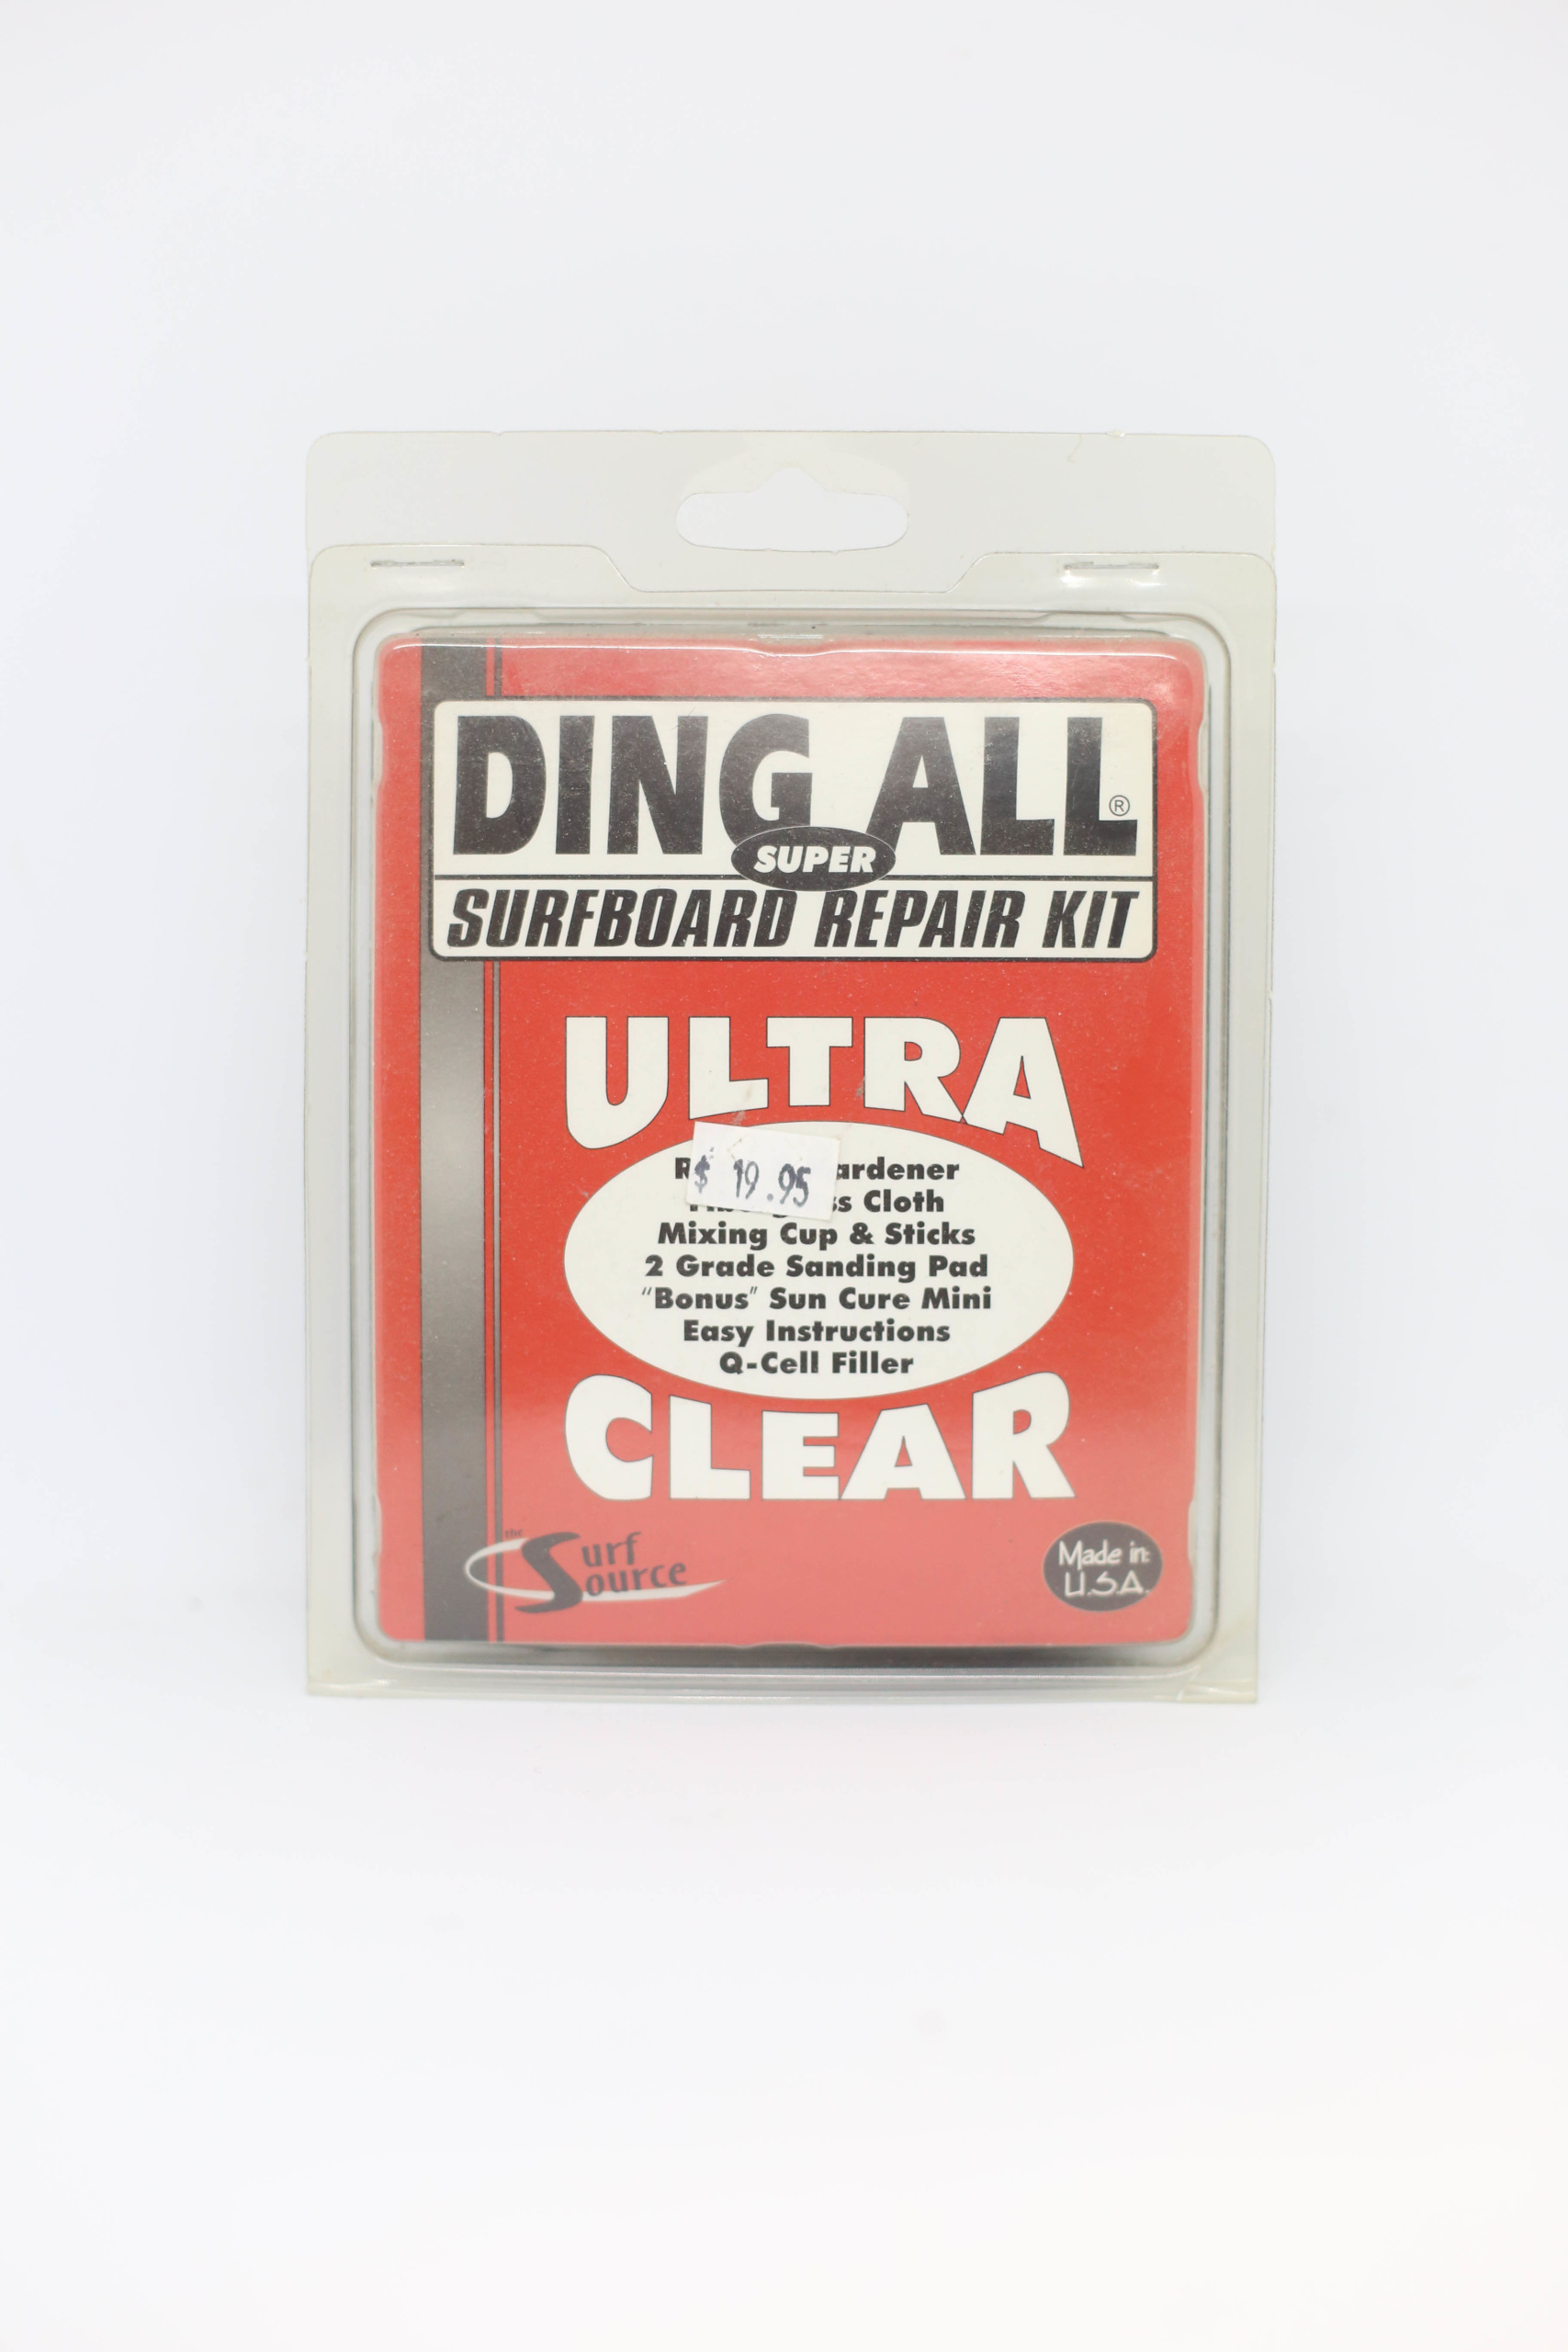 Ding All Super Surfboard Repair Kit (Ultra Clear)